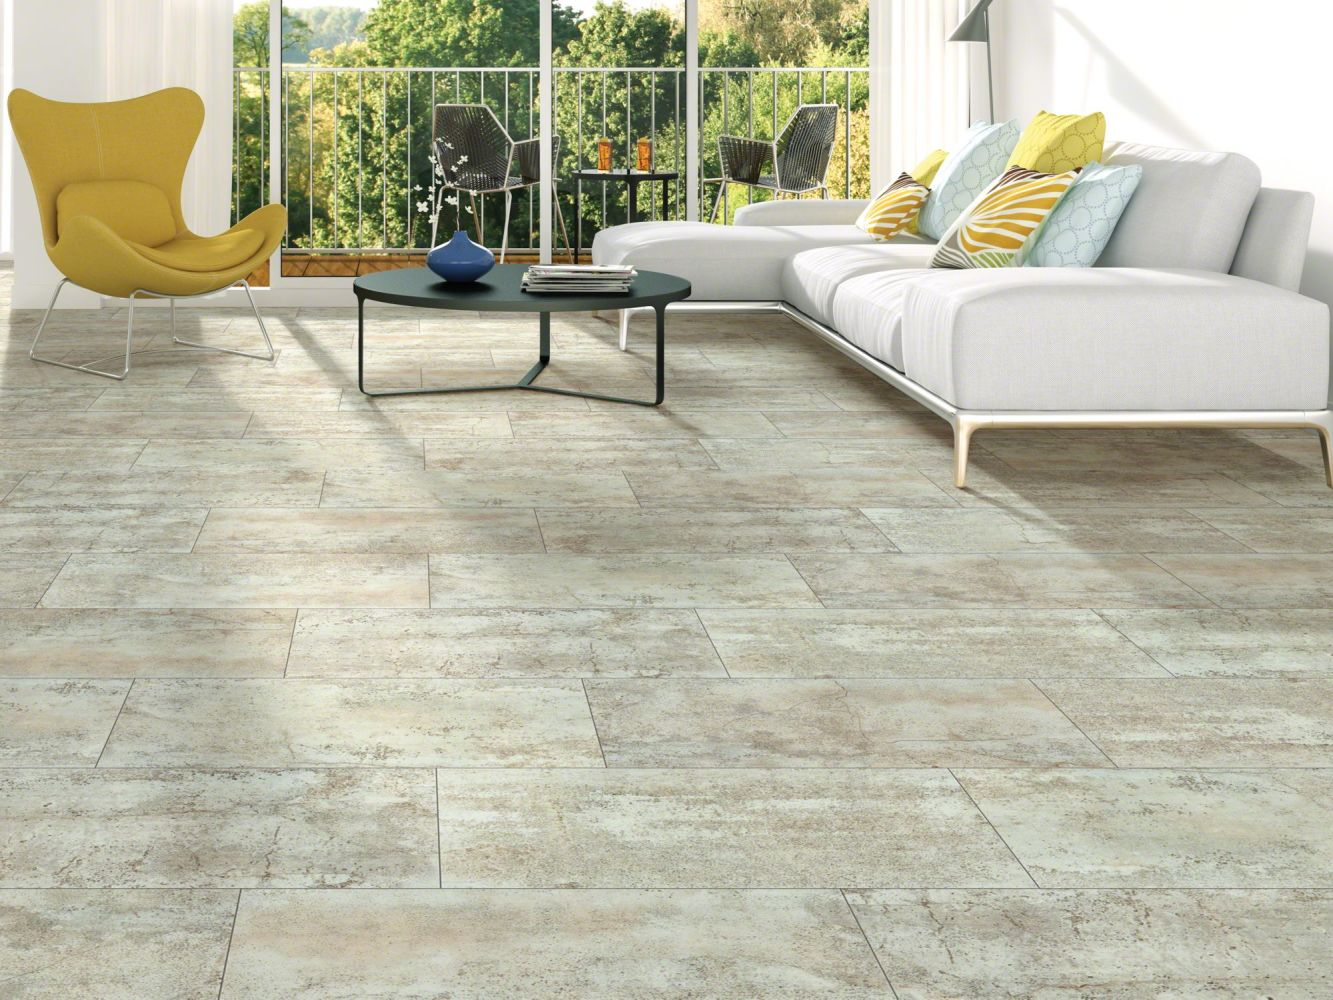 Shaw Floors Vinyl Residential Intrepid Tile Plus Prairie 00148_2026V